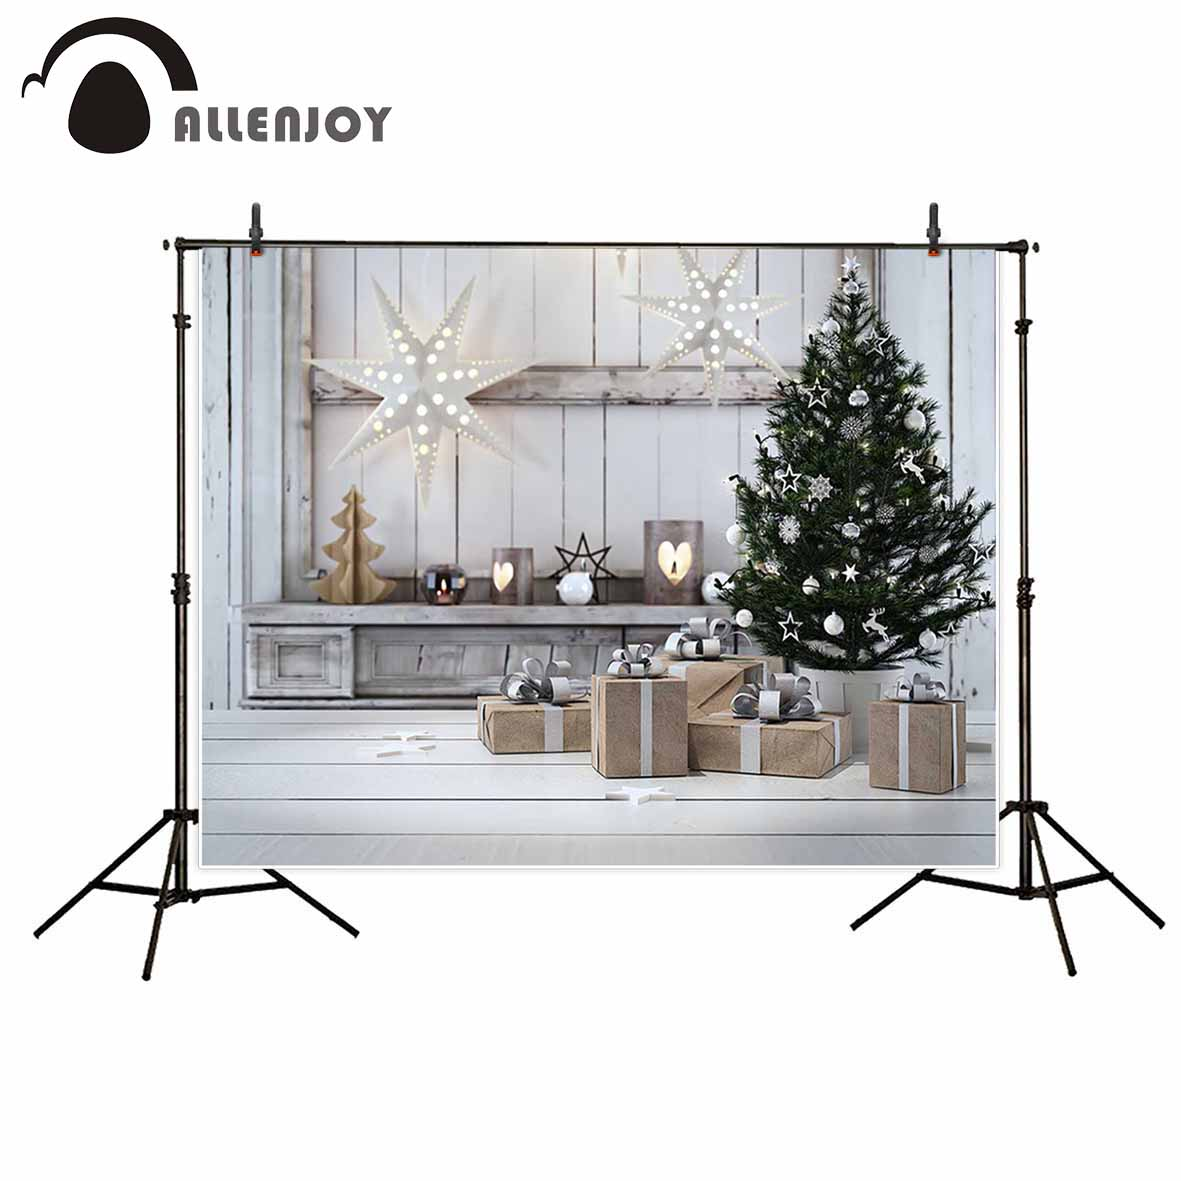 Allenjoy photographic background White Wooden Star Light Christmas Tree Gift Photographic background for study Photo background